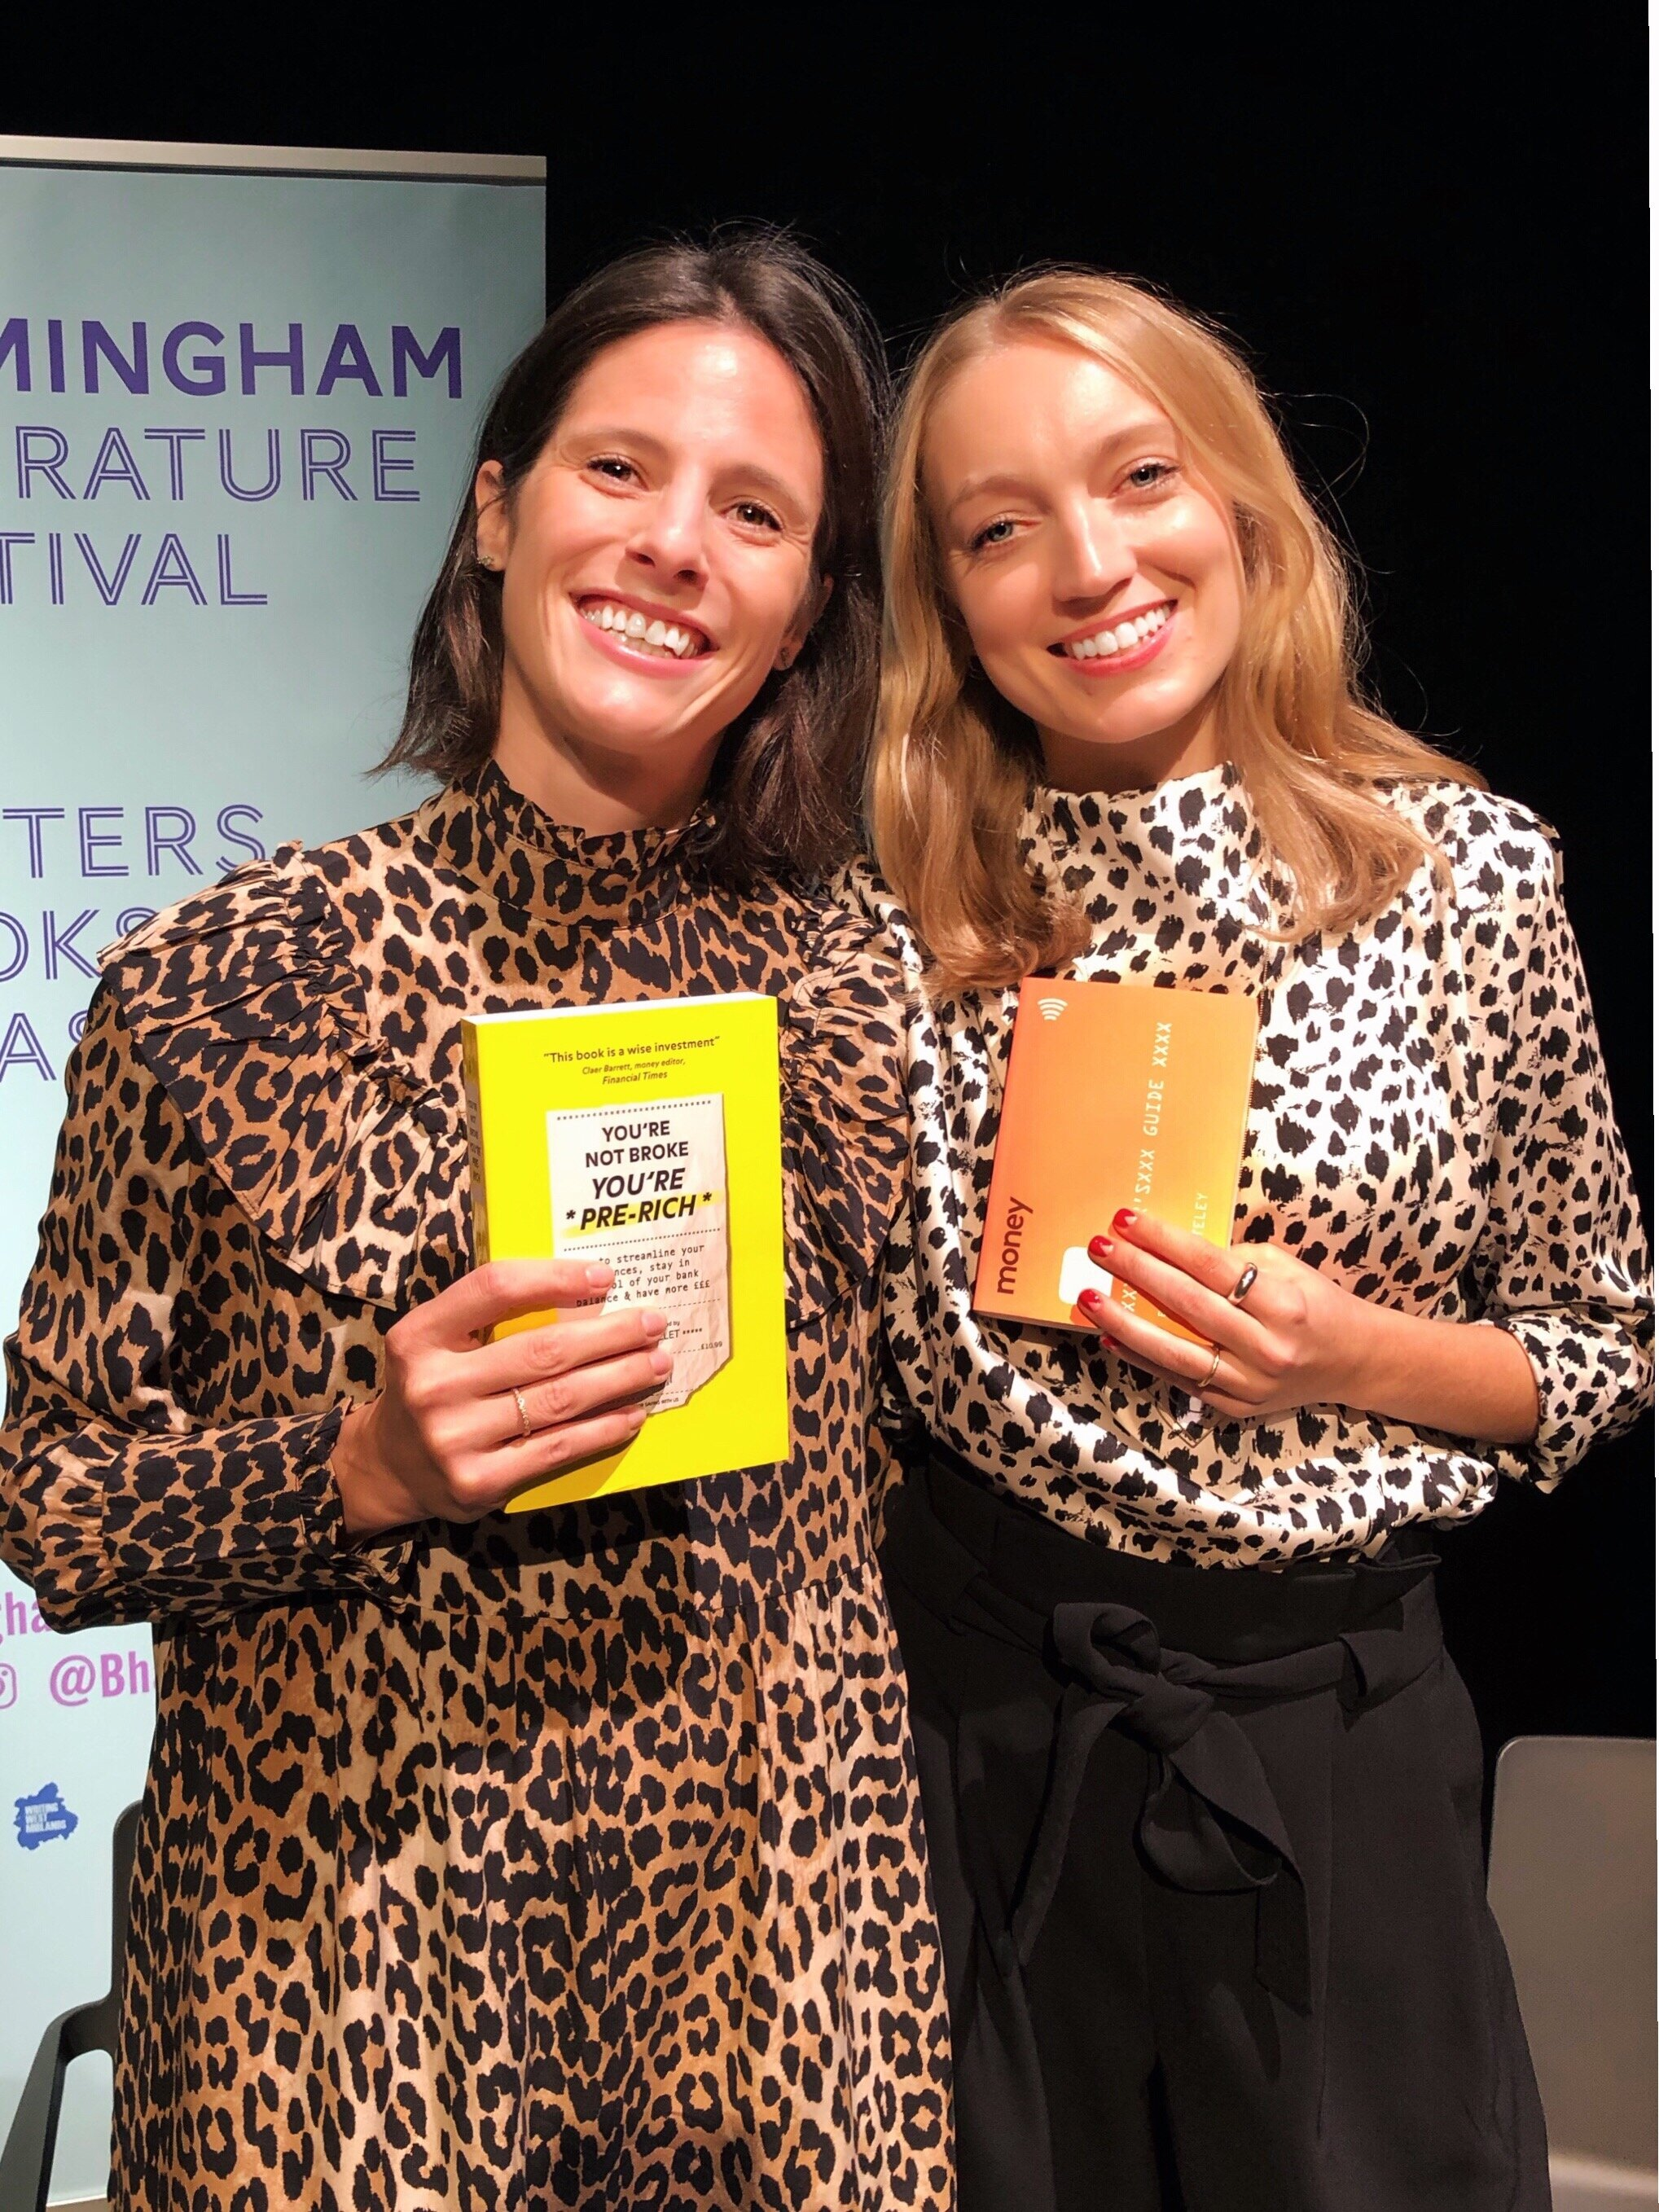 Money Matters @ Birmingham Literature Festival with Emilie Bellet and Laura Whateley - Sat 05 Oct 13:30, chaired by Sathnam SangheraGreat day at the Birmingham Literature Festival last Saturday talking about... money! with amazing author and journalist Laura Whateley.Thank you Antonia Beck for the very kind invitation and to everyone who came.EmilieAre you someone who tends to spend more than you earn? Always living in fear of looking at your bank balance and surviving on baked beans come payday? From relationships, to ambitions and mental health, money plays a huge role in our lives and yet it often feels taboo to talk about it. Not any more. It's time to take back control of our bank balances and start talking about money.Join writers Emilie Bellet and Laura Whateley as they discuss their latest books about our relationships with money, and share practical tips to help us feel more in control of our finances. From savings and pensions to discussing the gender pay gap and fighting for a pay rise, Laura and Emilie are on a mission to debunk the financial jargon and break the taboos around money. Come and be part of this important conversation and discover how talking about money can actually change your life.